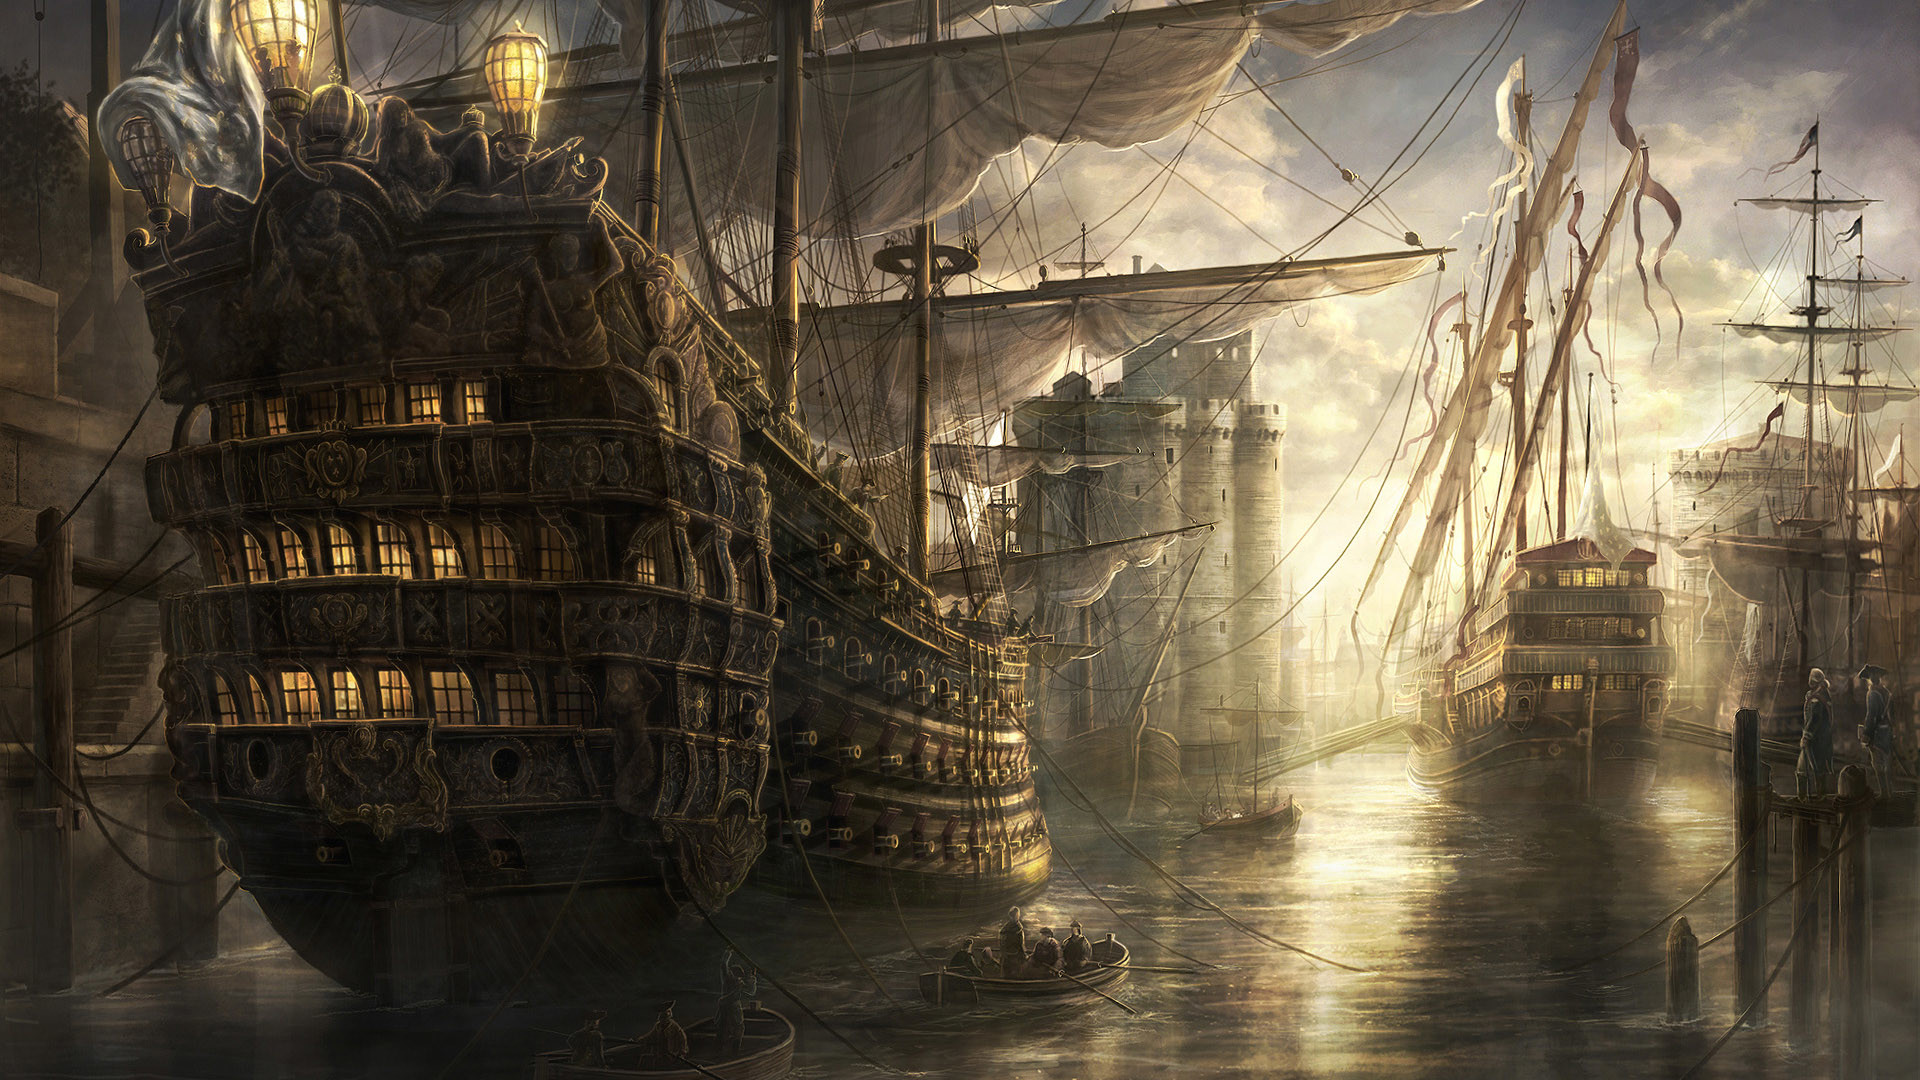 1920x1080 Pirate Ship Schooner HD wallpaper thumb